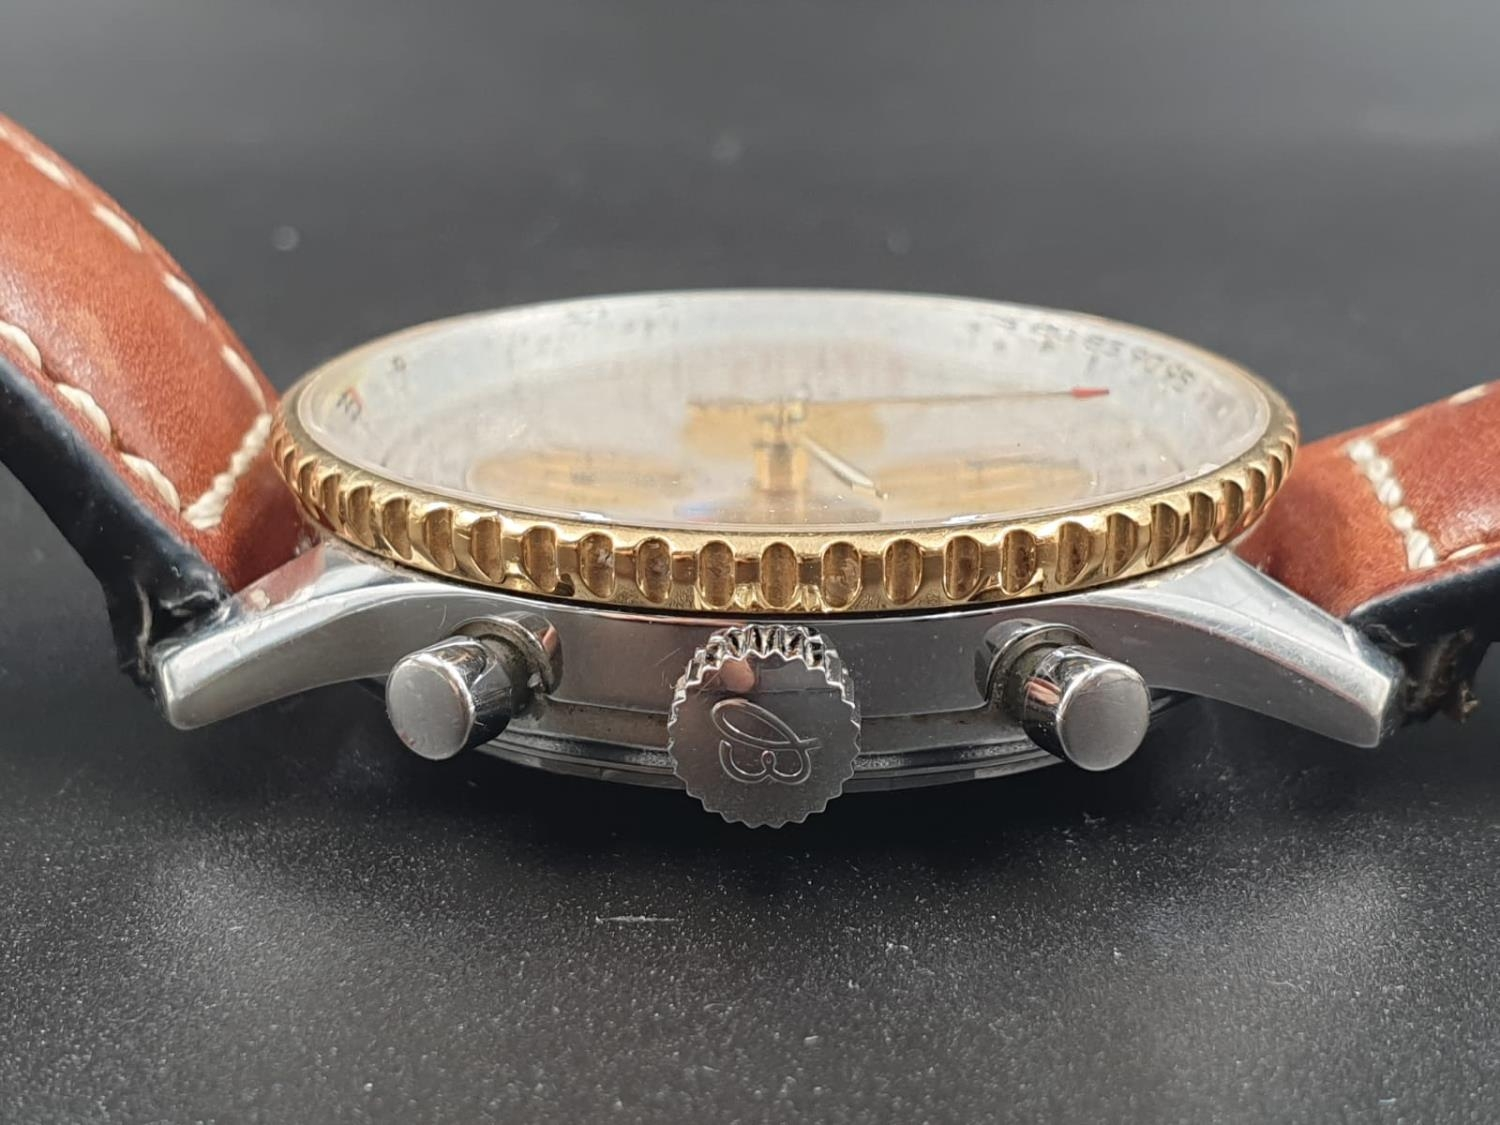 A BREITLING NAVITIMER CHRONOMETER AUTOMATIC MOVEMENT ON A LEATHER STRAP. 42mm - Image 9 of 10